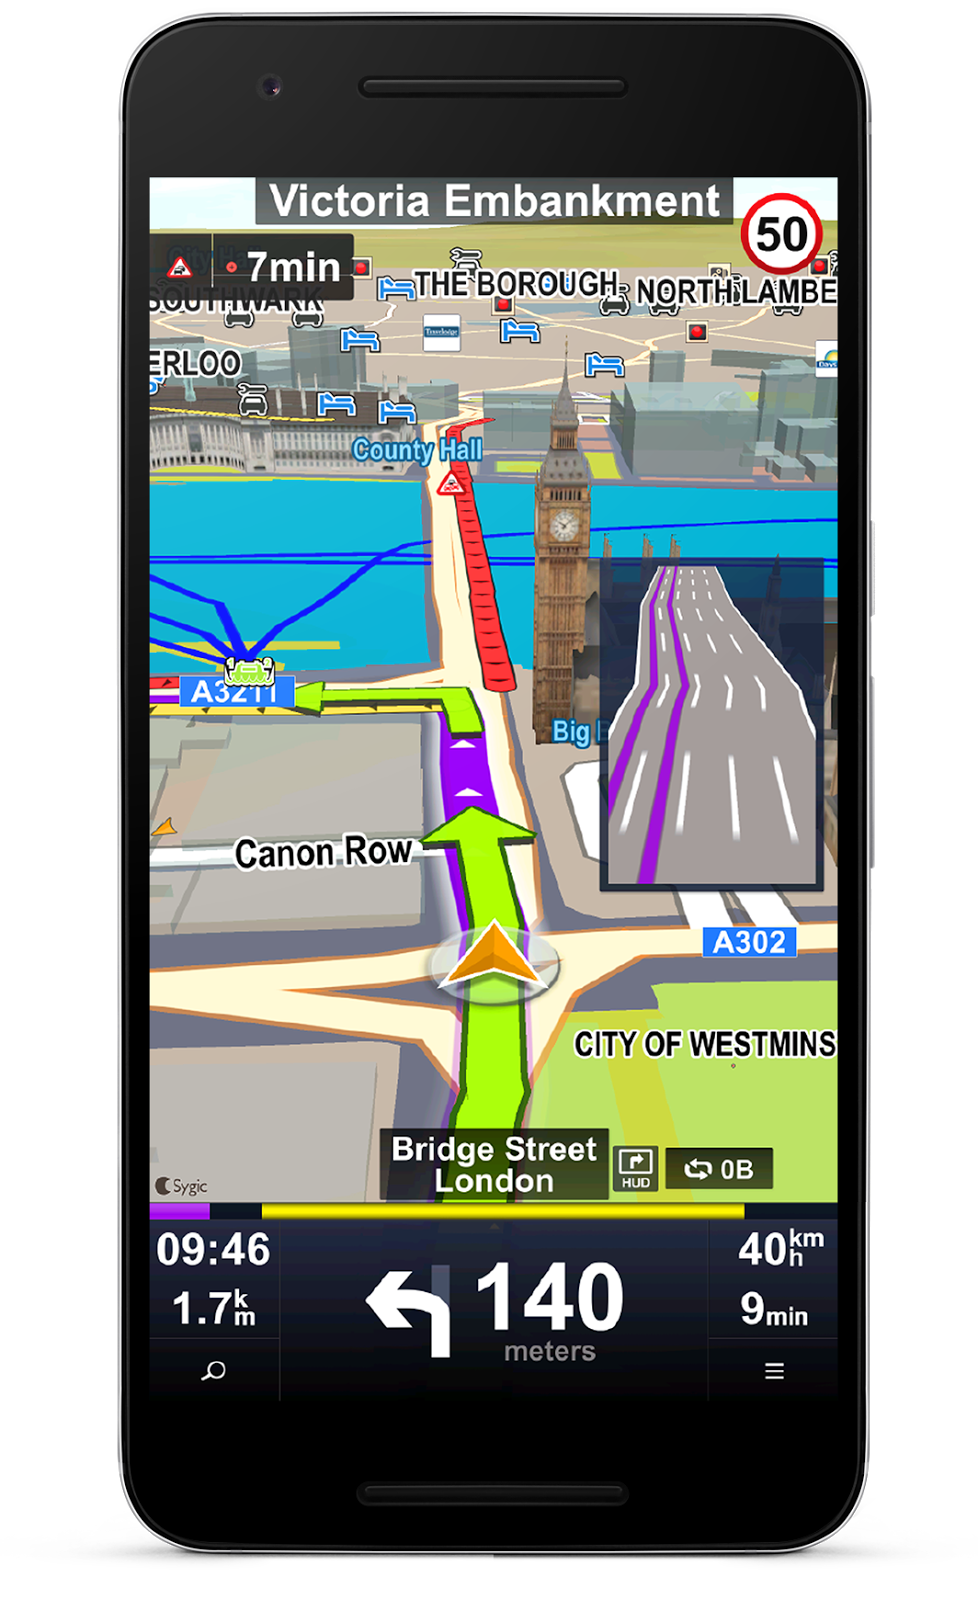 Sygic Car Navigation v15 5 0 [Unlocked] APK - APK for Android